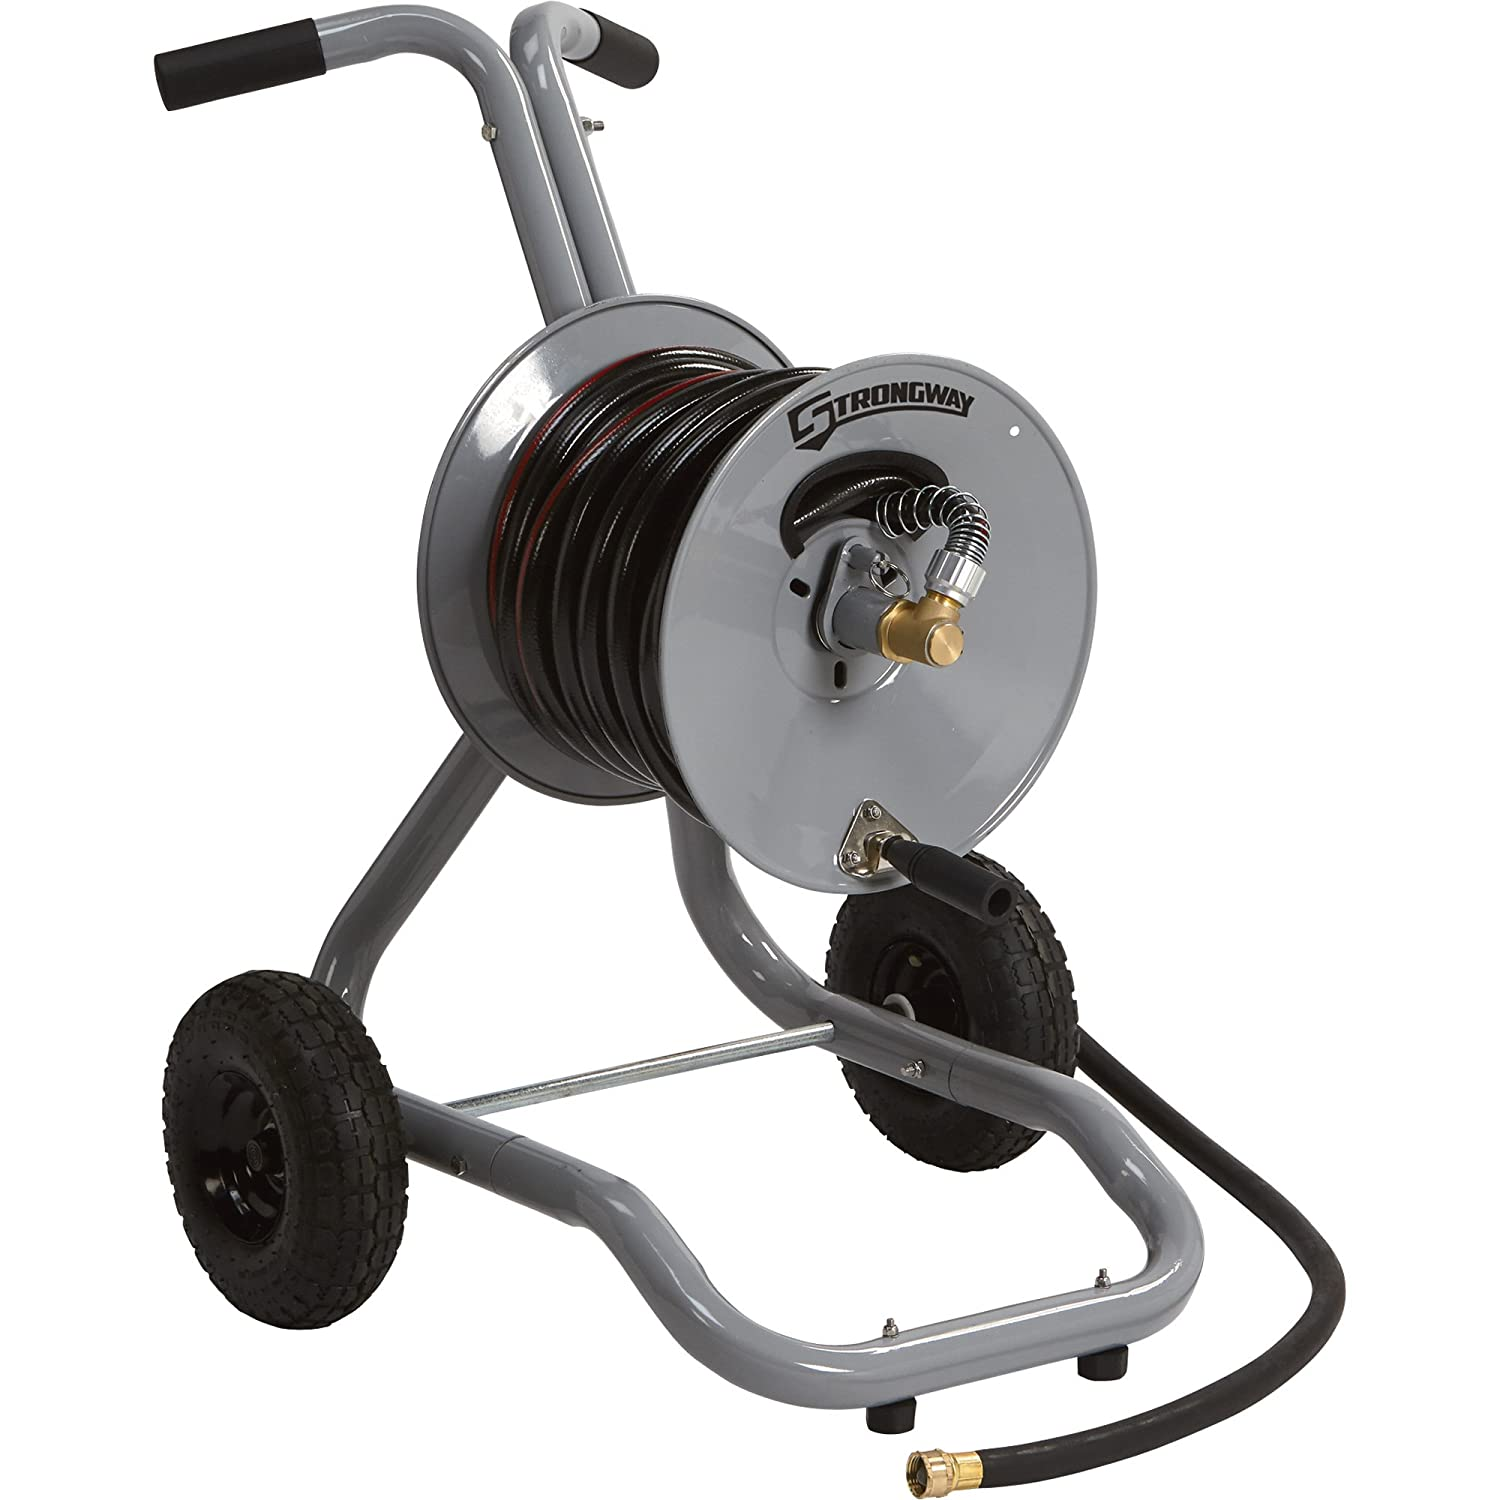 Amazon.com  Strongway Garden Hose Reel Cart - Holds 150ft. x 5/8in. Hose  Garden u0026 Outdoor  sc 1 st  Amazon.com & Amazon.com : Strongway Garden Hose Reel Cart - Holds 150ft. x 5/8in ...